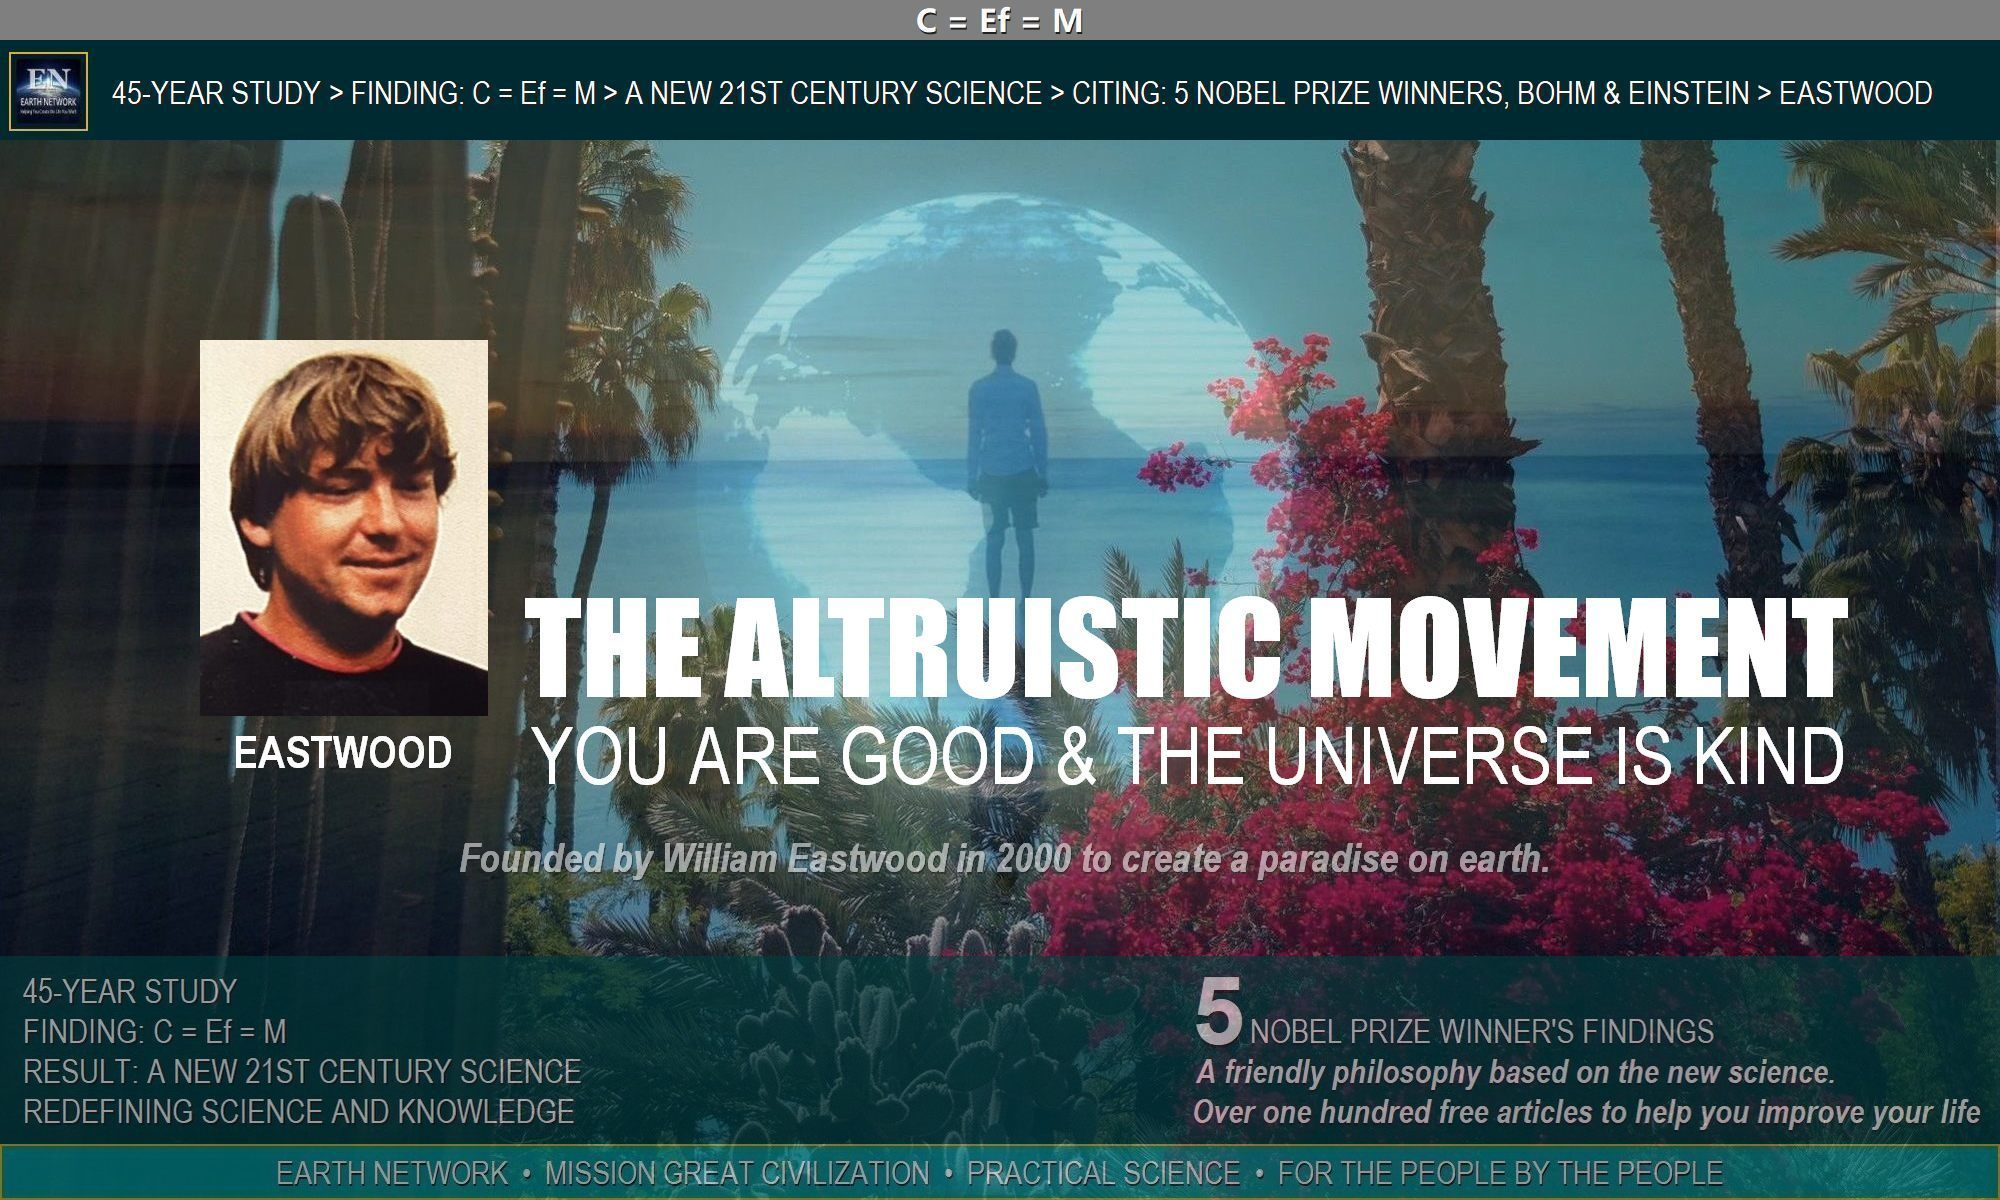 William Eastwood in paradise created by the Altruistic Movement he founded in 2000 to bring about a new age for humanity.